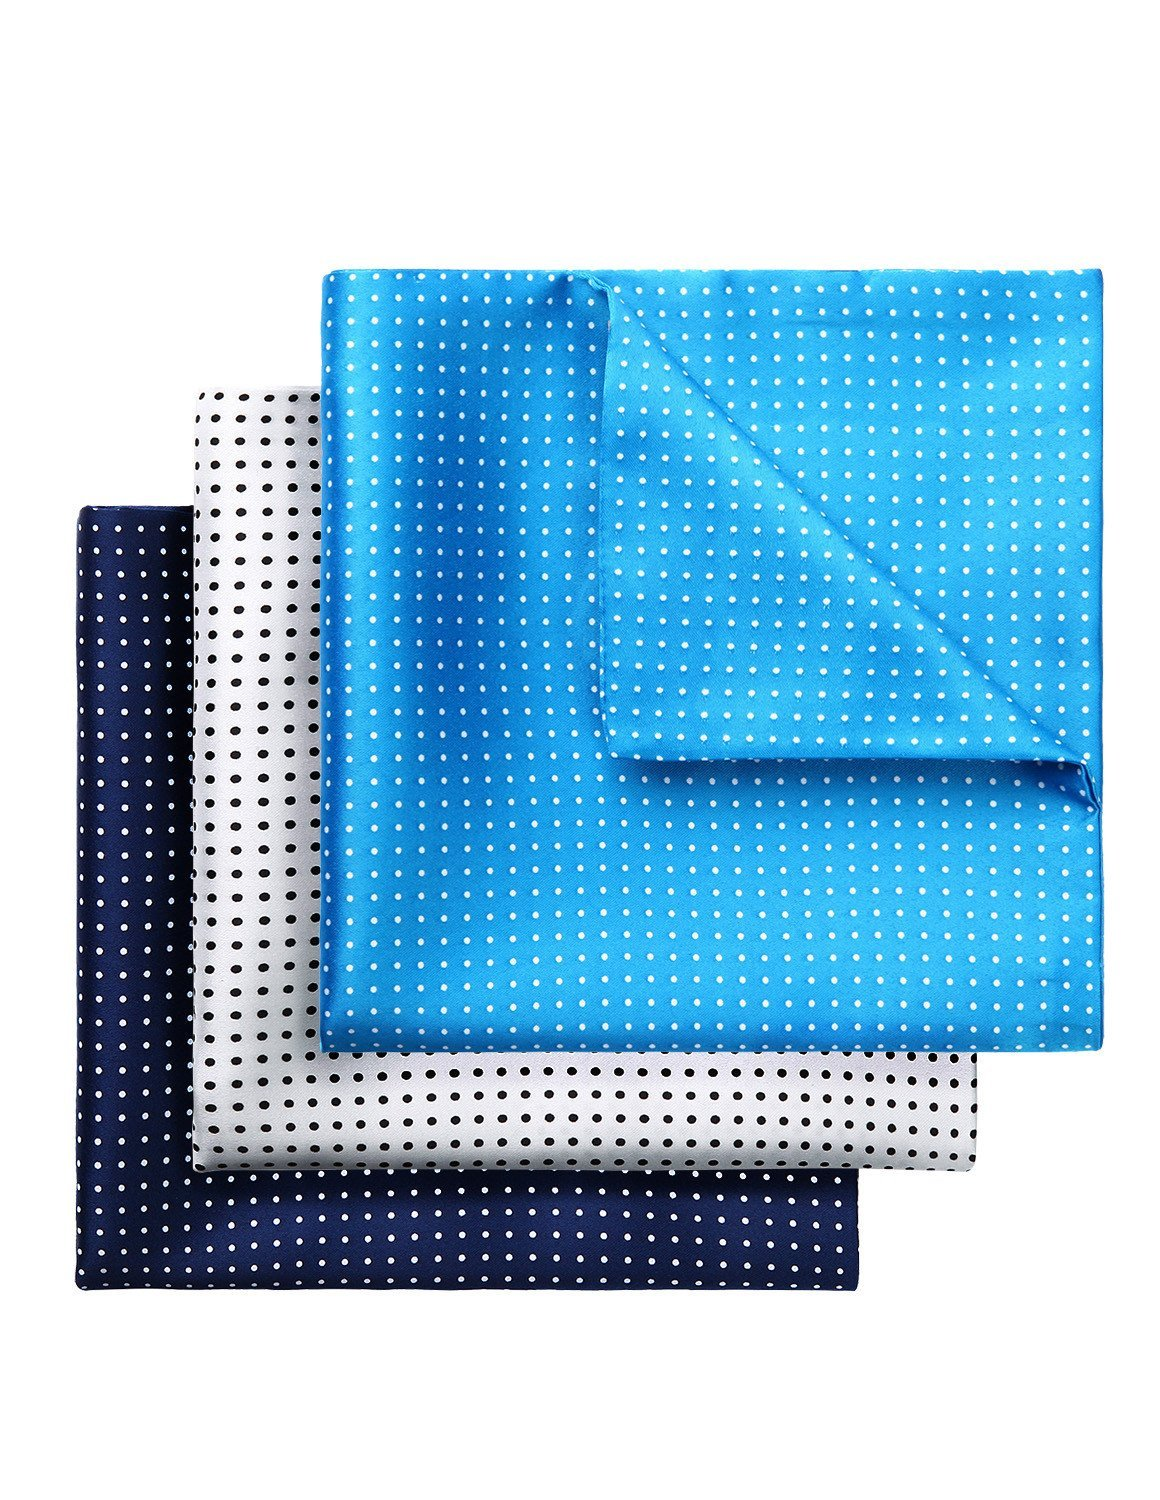 HISDERN 3 Pack Polka Dot Printed Double Sided Pocket Square Mens Handkerchief Hanky Set Wedding Party